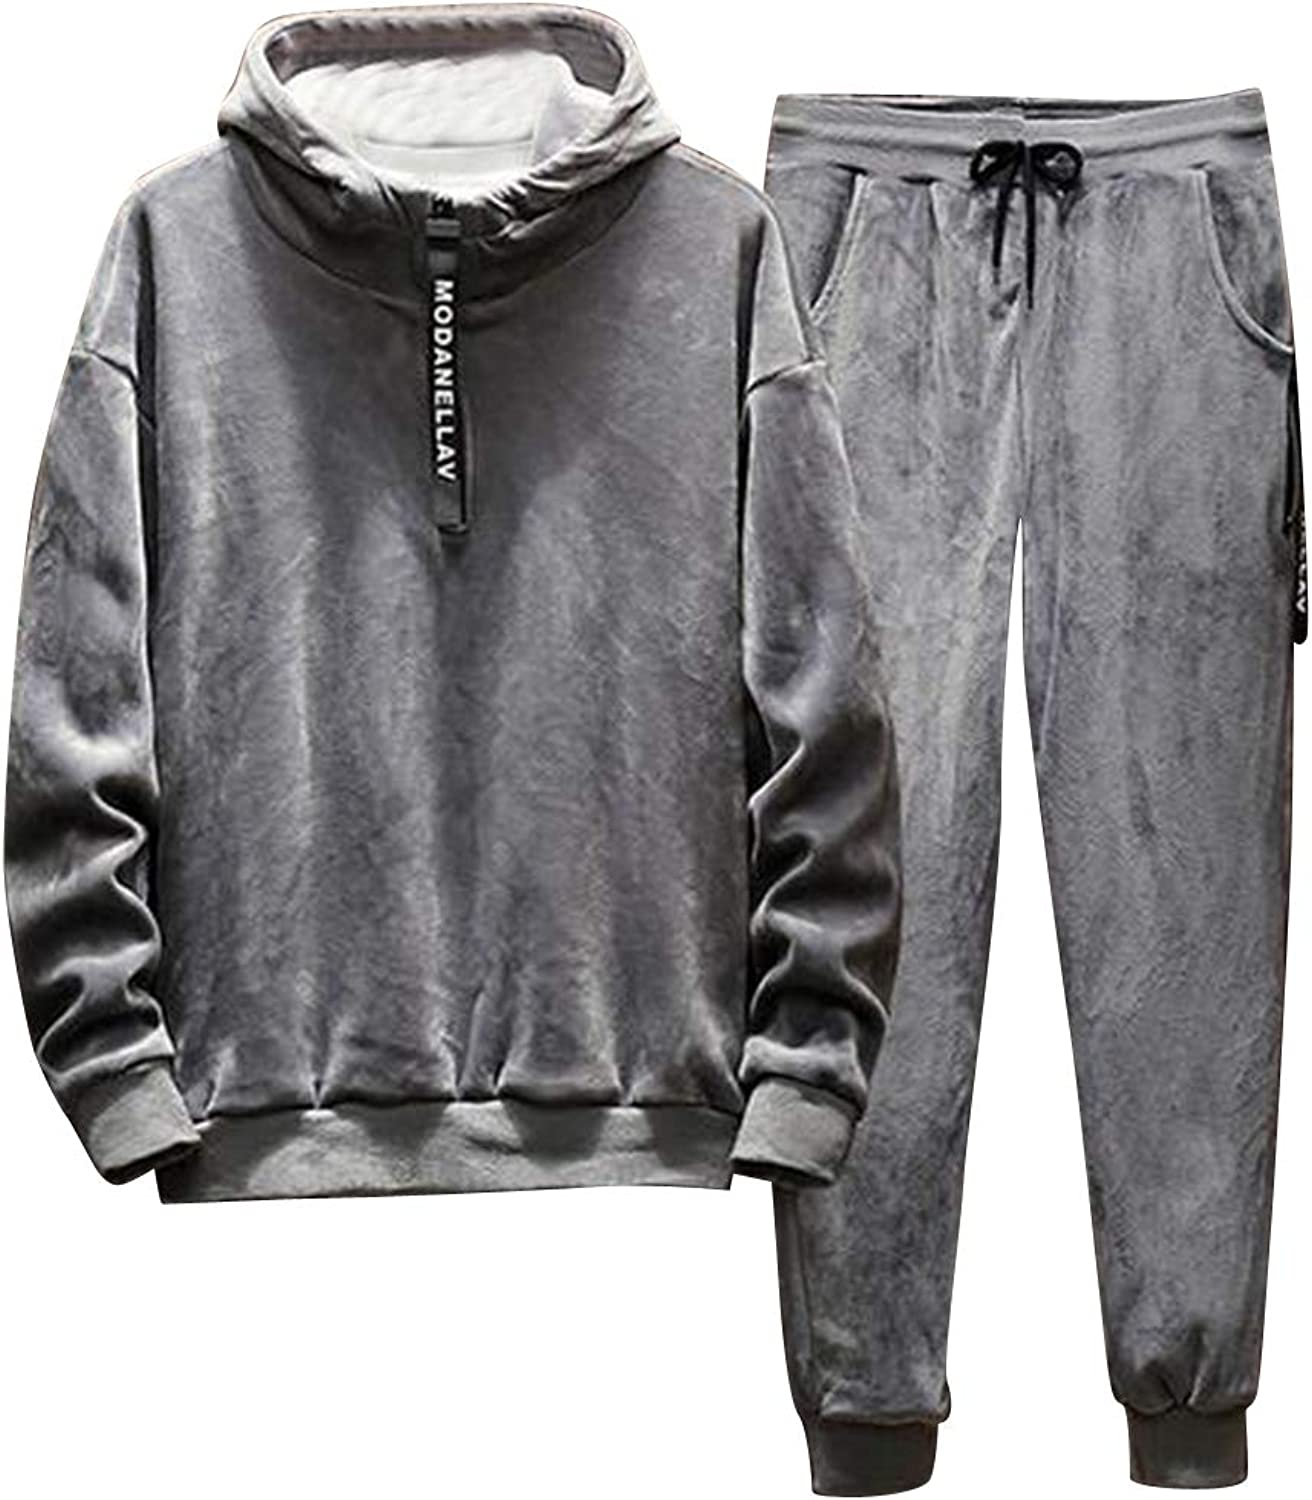 Jofemuho Men Fall Winter Pleuche Two Piece Plus Size Fleece Lined Sports Outfit Set